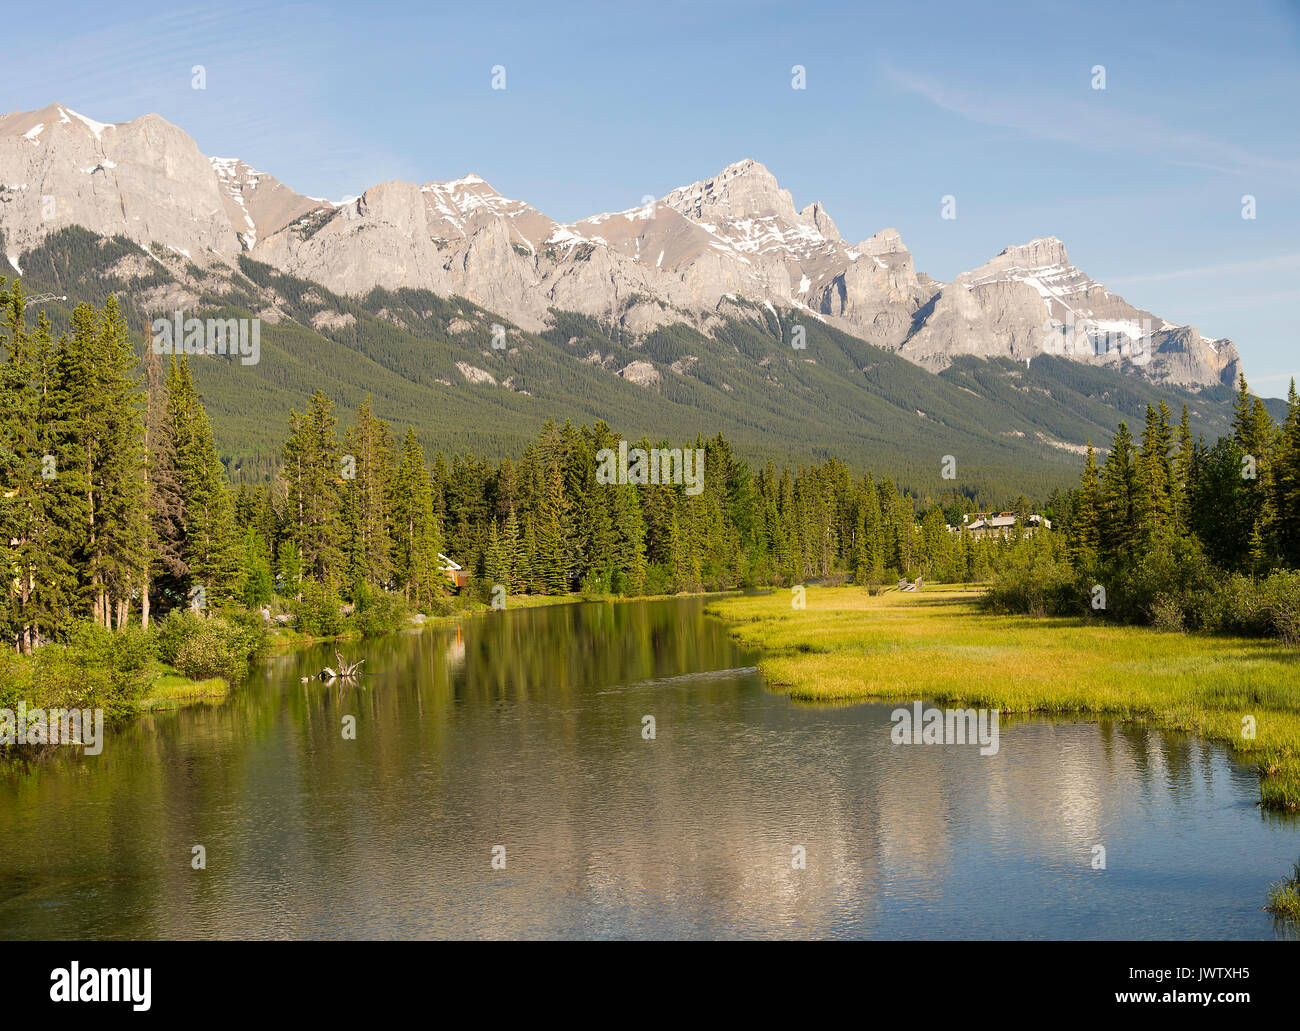 The Bow River Flowing Through Canmore in Banff National Park with Pine Forest and Rocky Mountain Range Alberta Canada - Stock Image